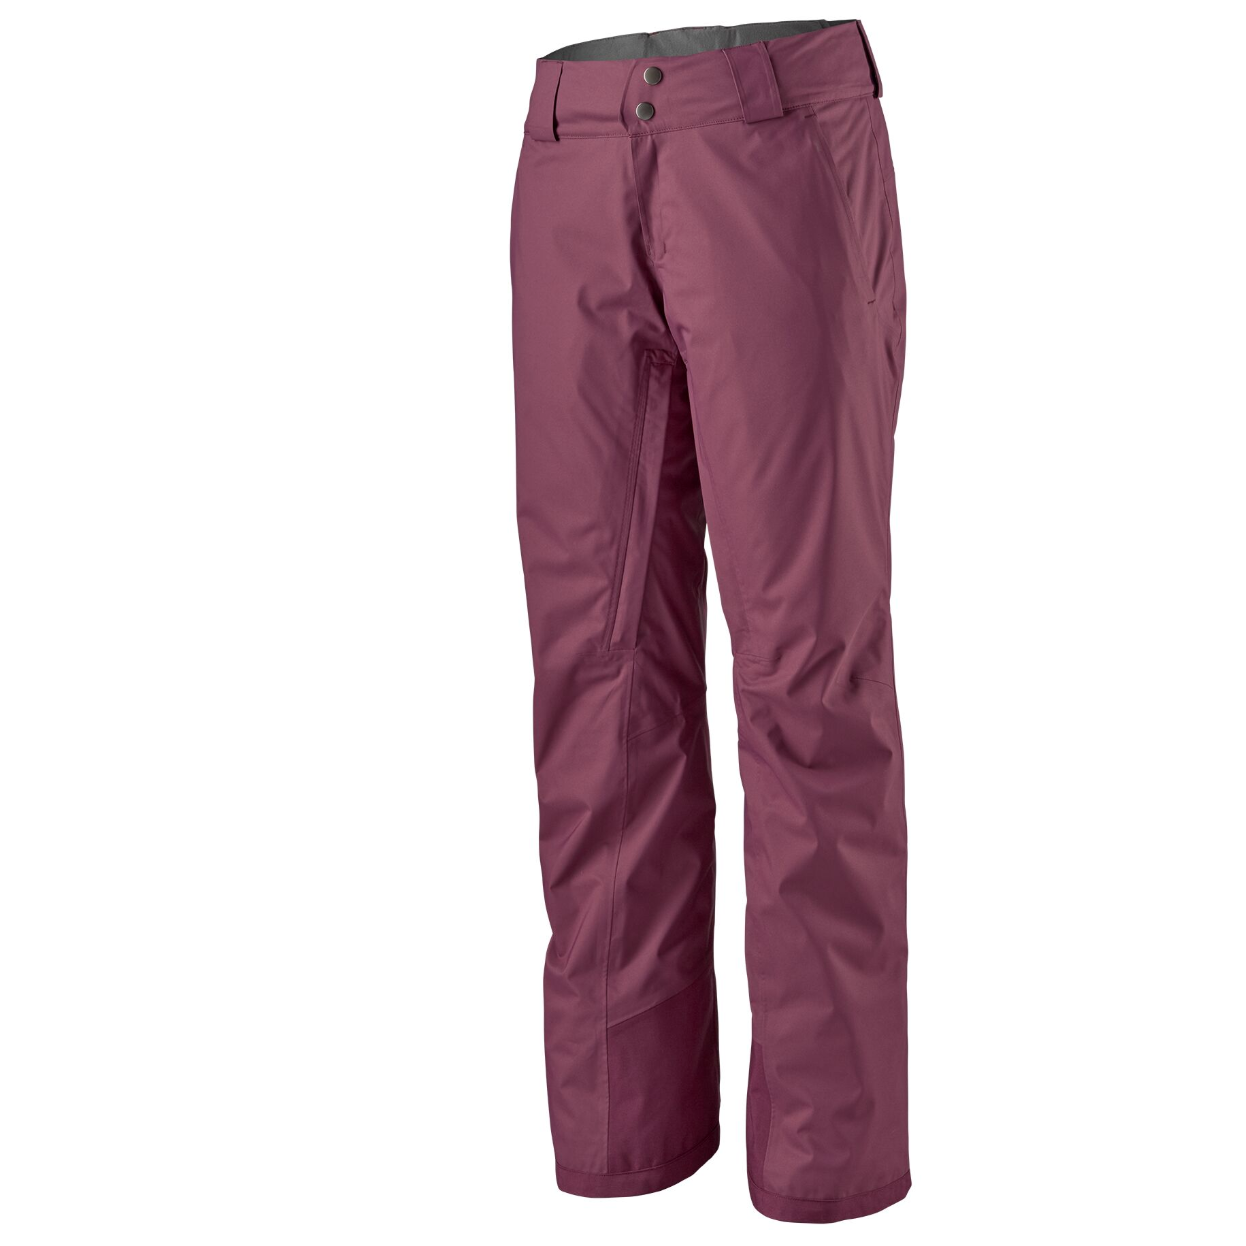 Womens Insulated Snowbelle Pants Light Balsamic